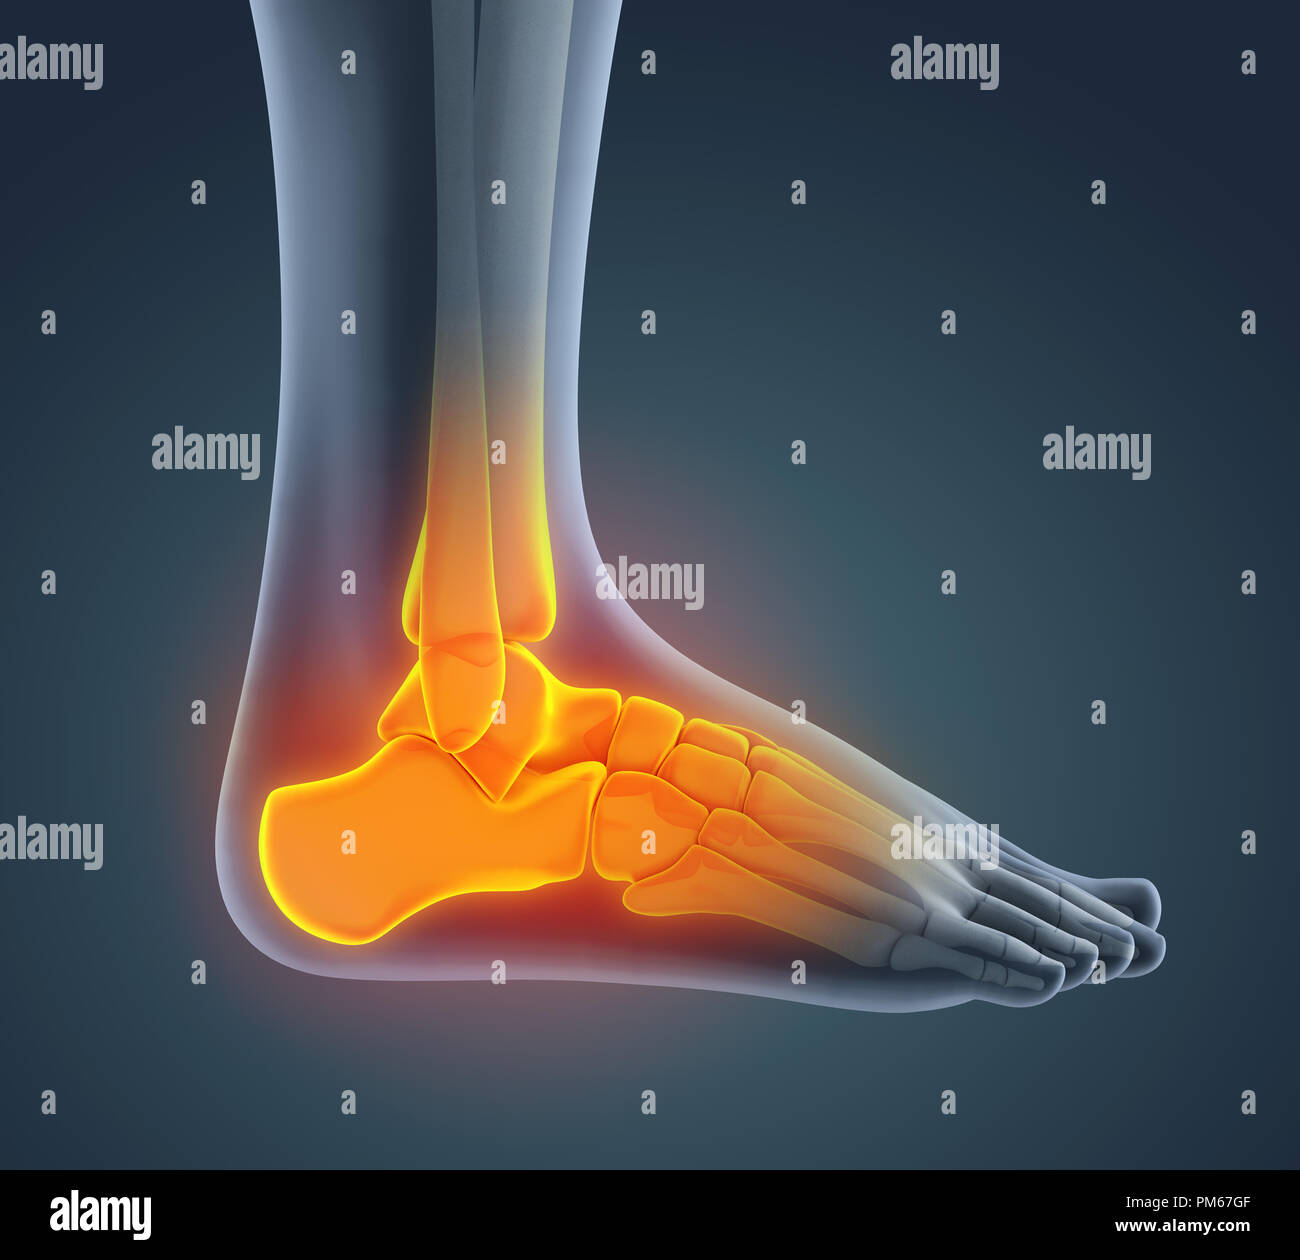 Human Heel Anatomy Stock Photos Human Heel Anatomy Stock Images